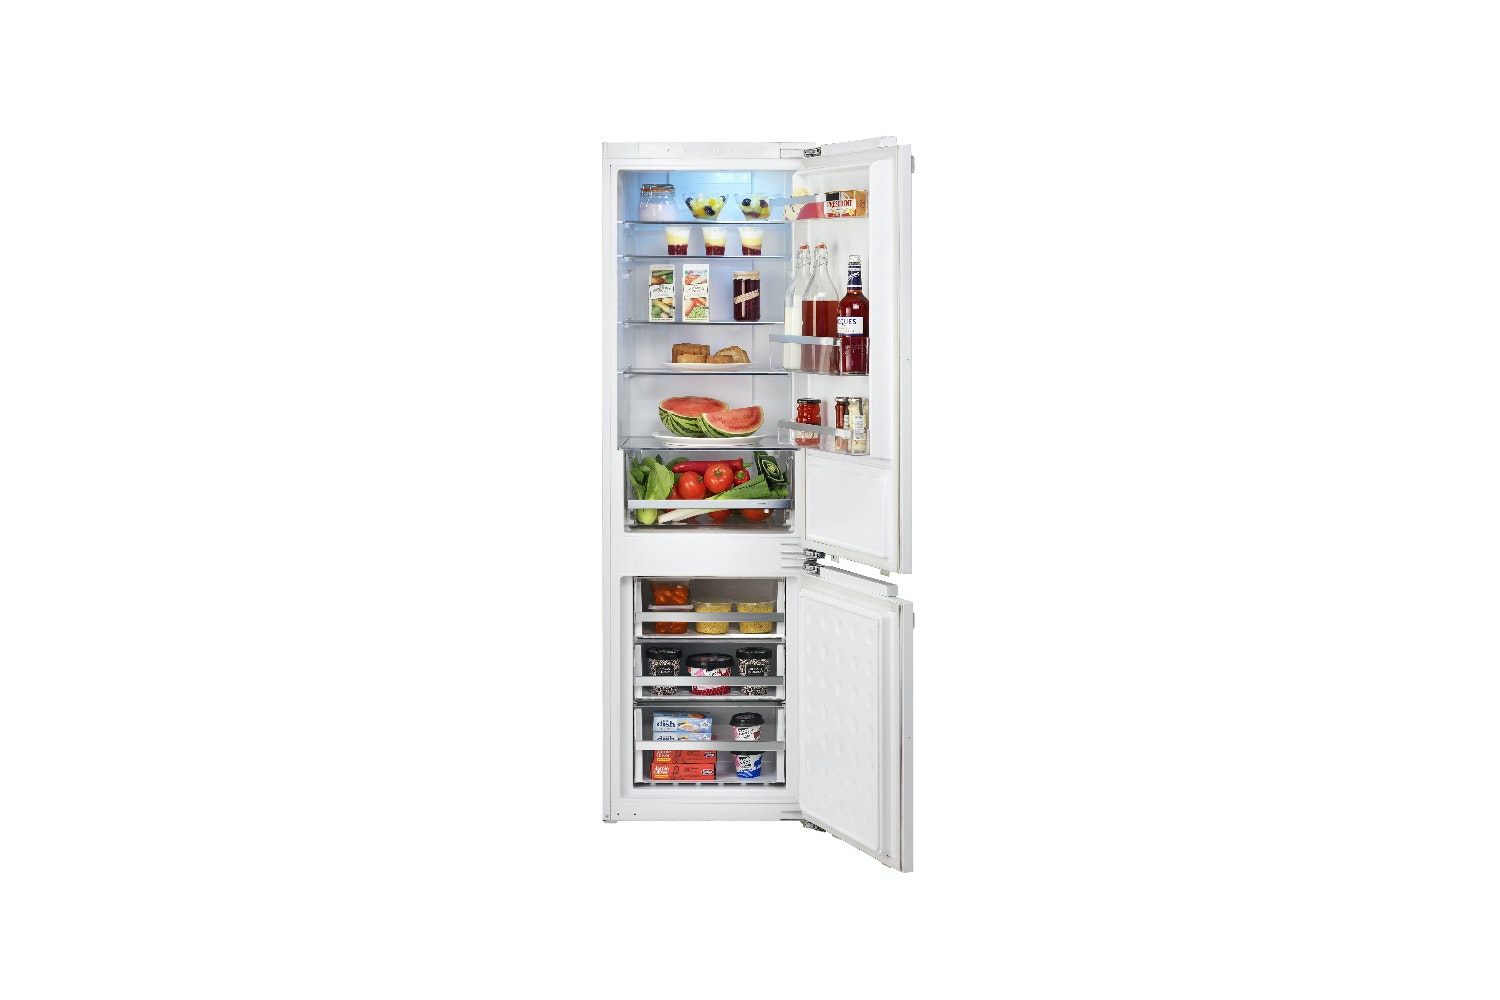 rangemaster built in fridge freezer 70:30